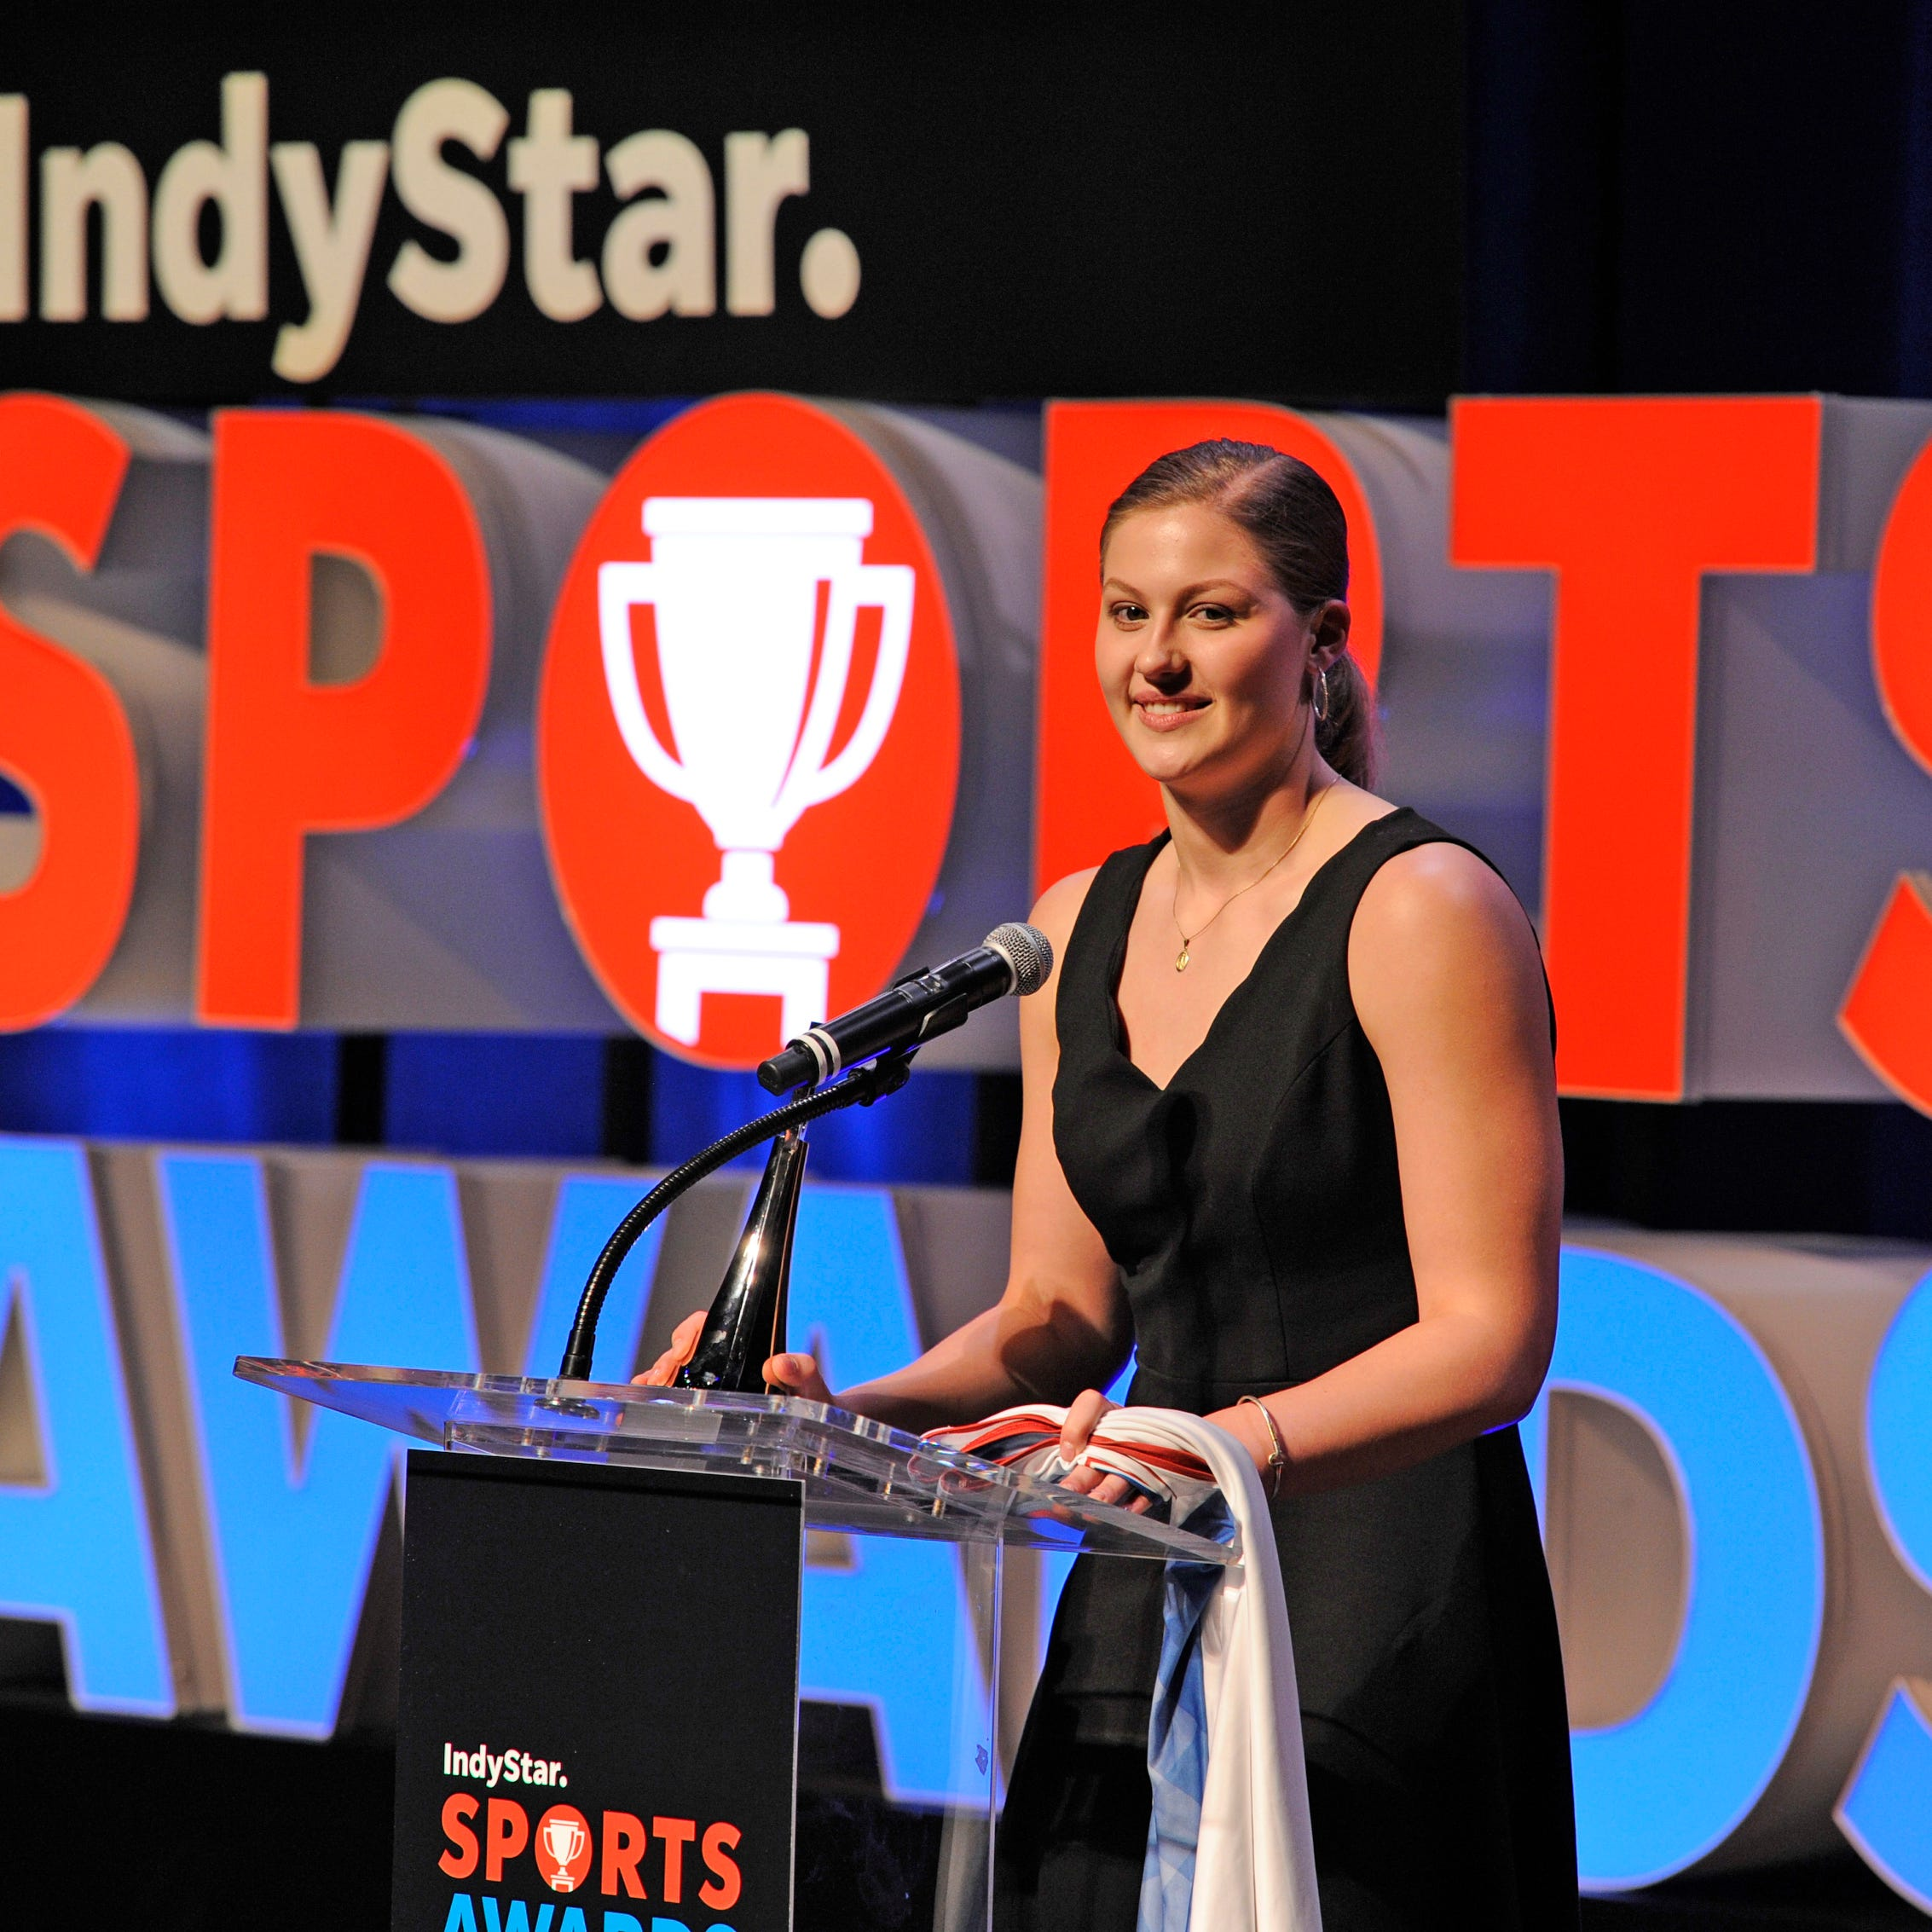 Jorie Allen of Bedford North Lawrence was named 2019 Indiana Miss Basketball during the Indiana Sports Awards at Clowes Hall on the campus of Butler University, Sunday, May 5, 2019.